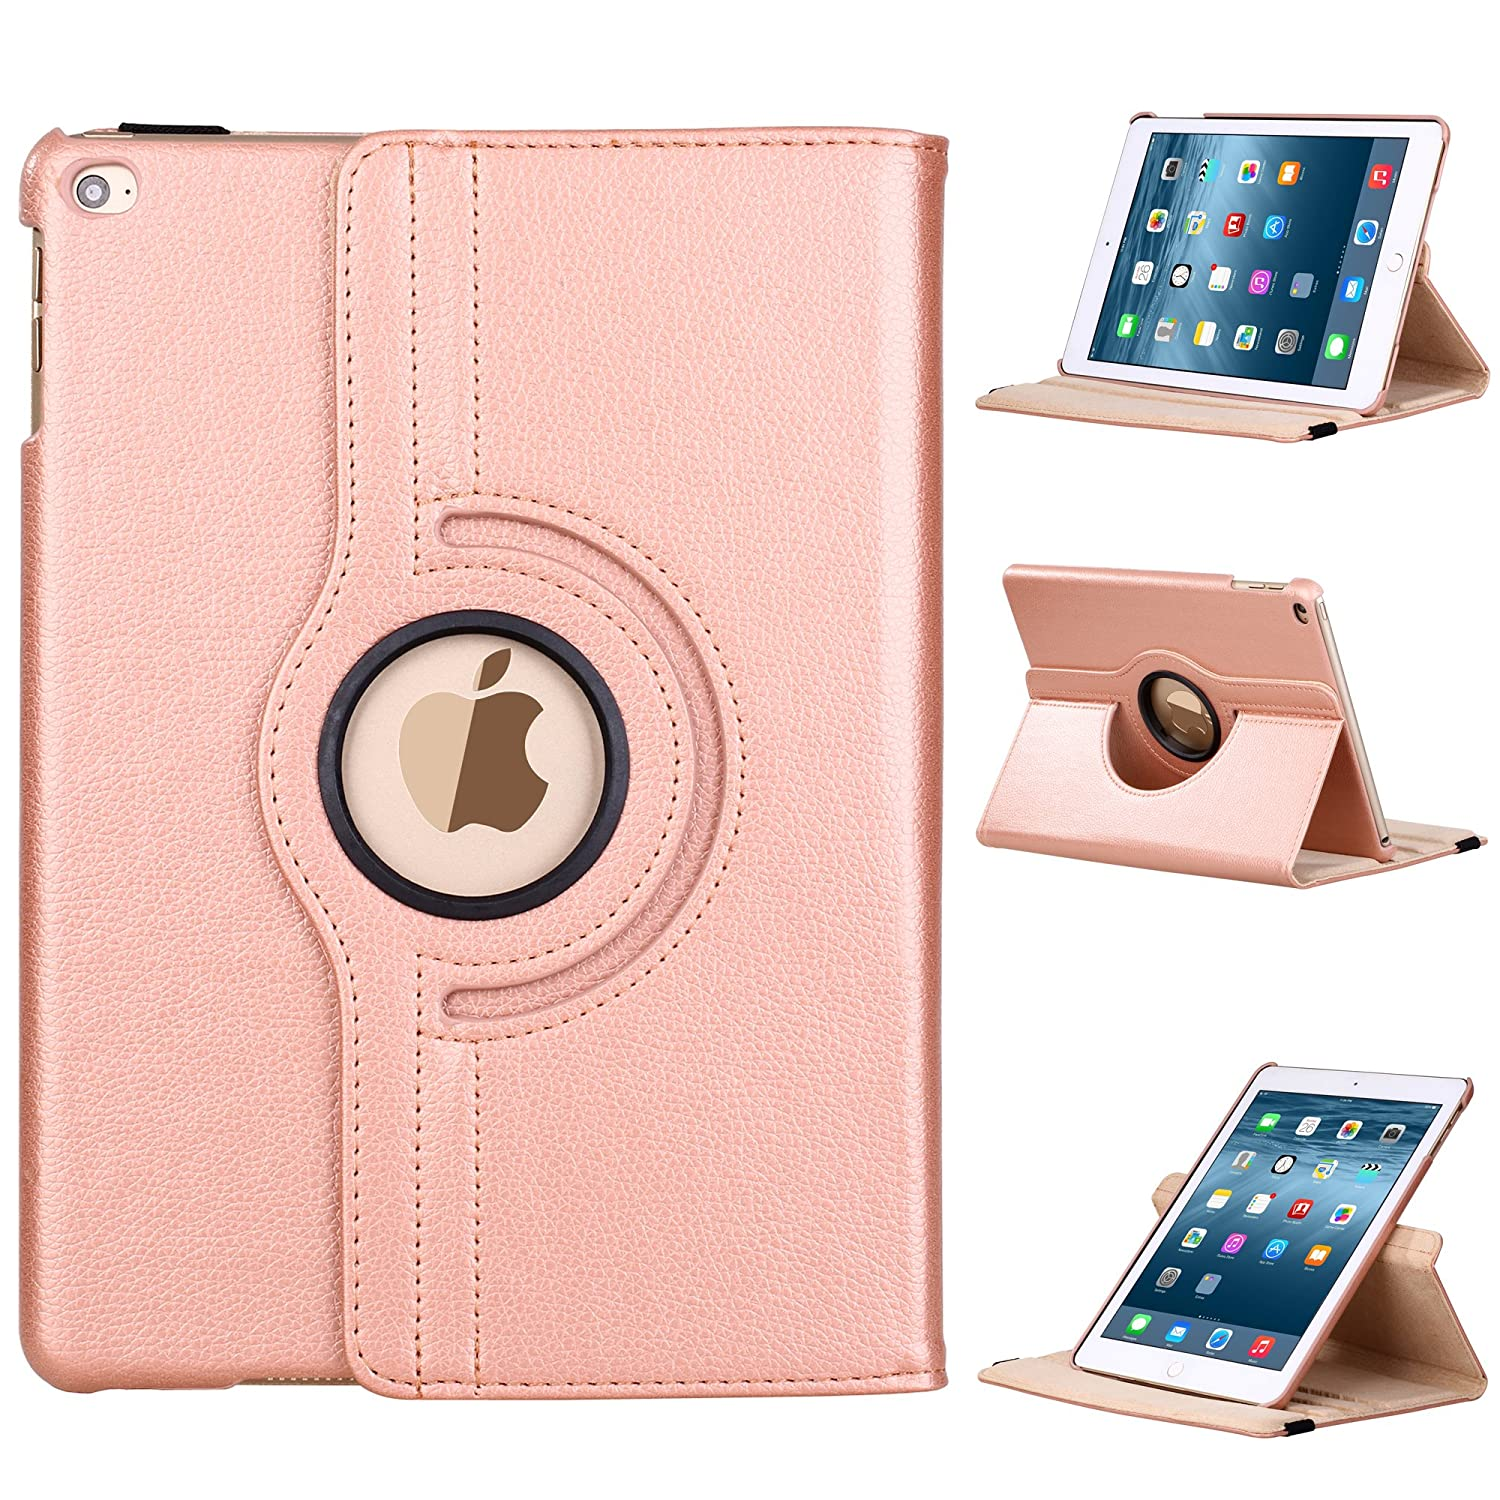 best sneakers d3ffd bcd9b E LV iPad 9.7 (2017) Case Cover Full Body Protection PU LEATHER for iPad  9.7 (2017) with 1 Stylus - (Only compatible with iPad 5 and iPad 9.7  (2017)) ...